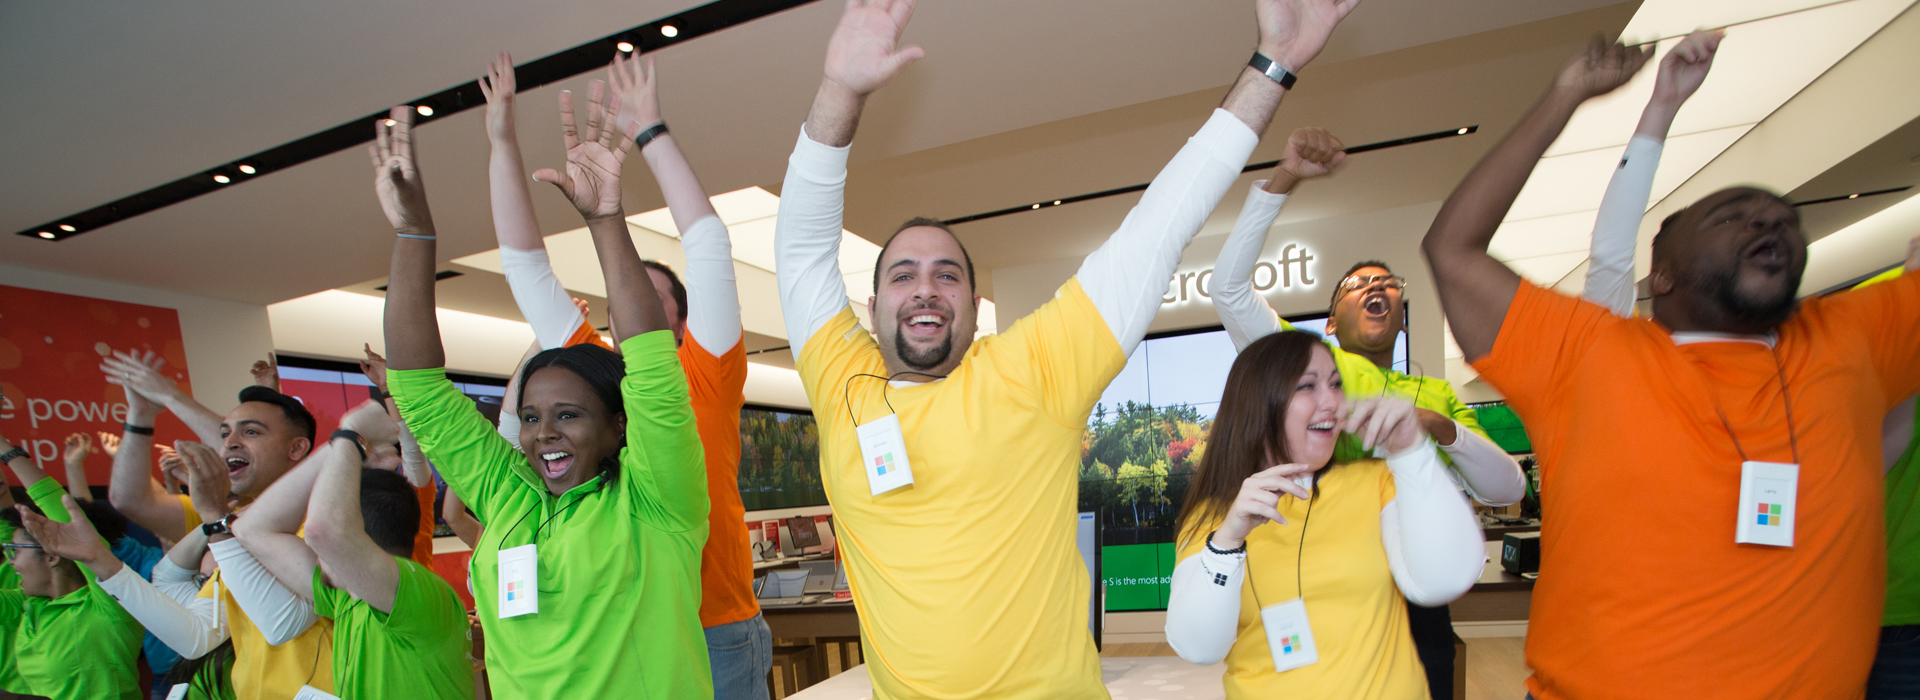 Photo of Microsoft store employees